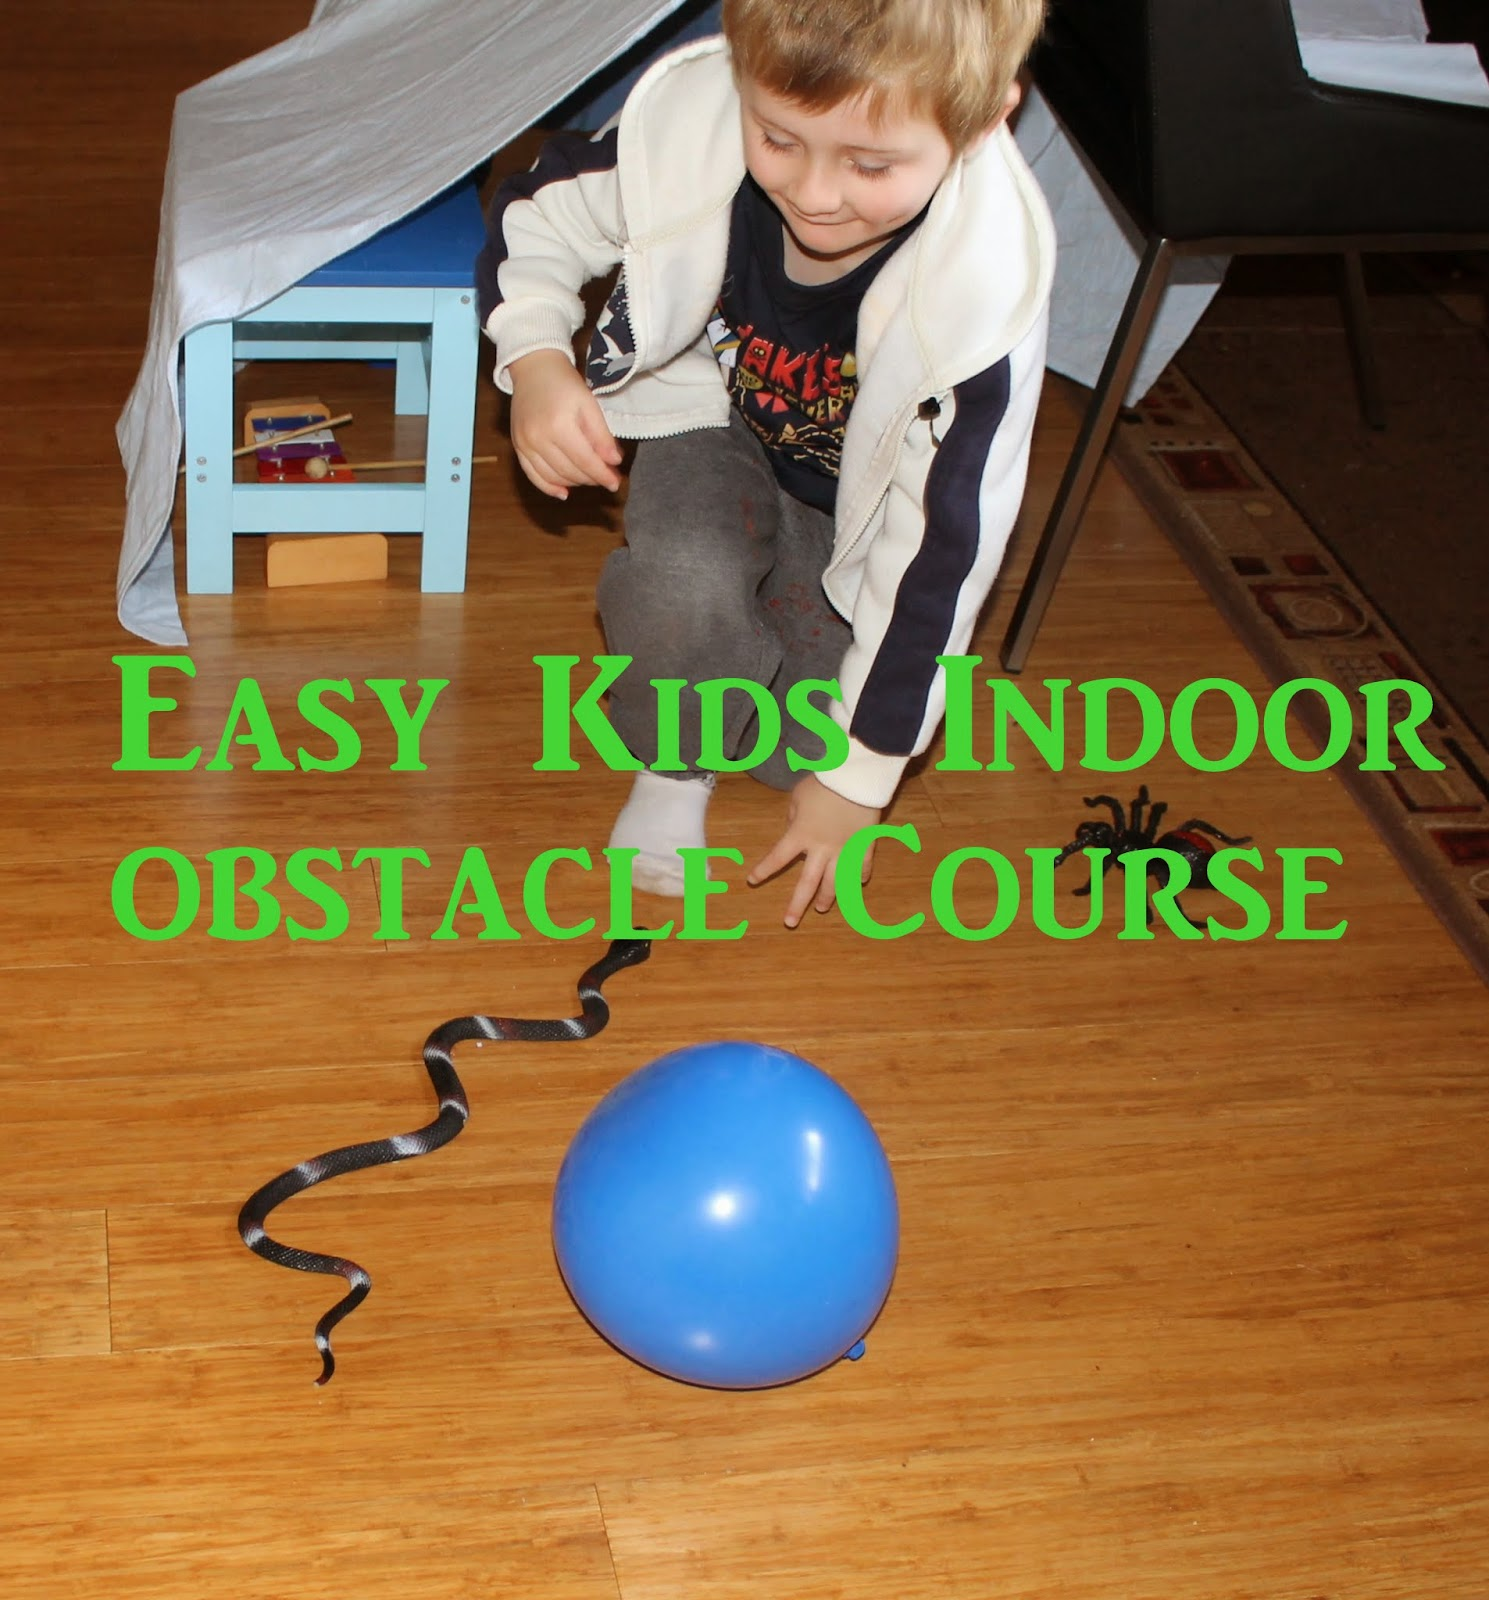 Adventures At Home With Mum: Easy Kids Indoor Obstacle Course